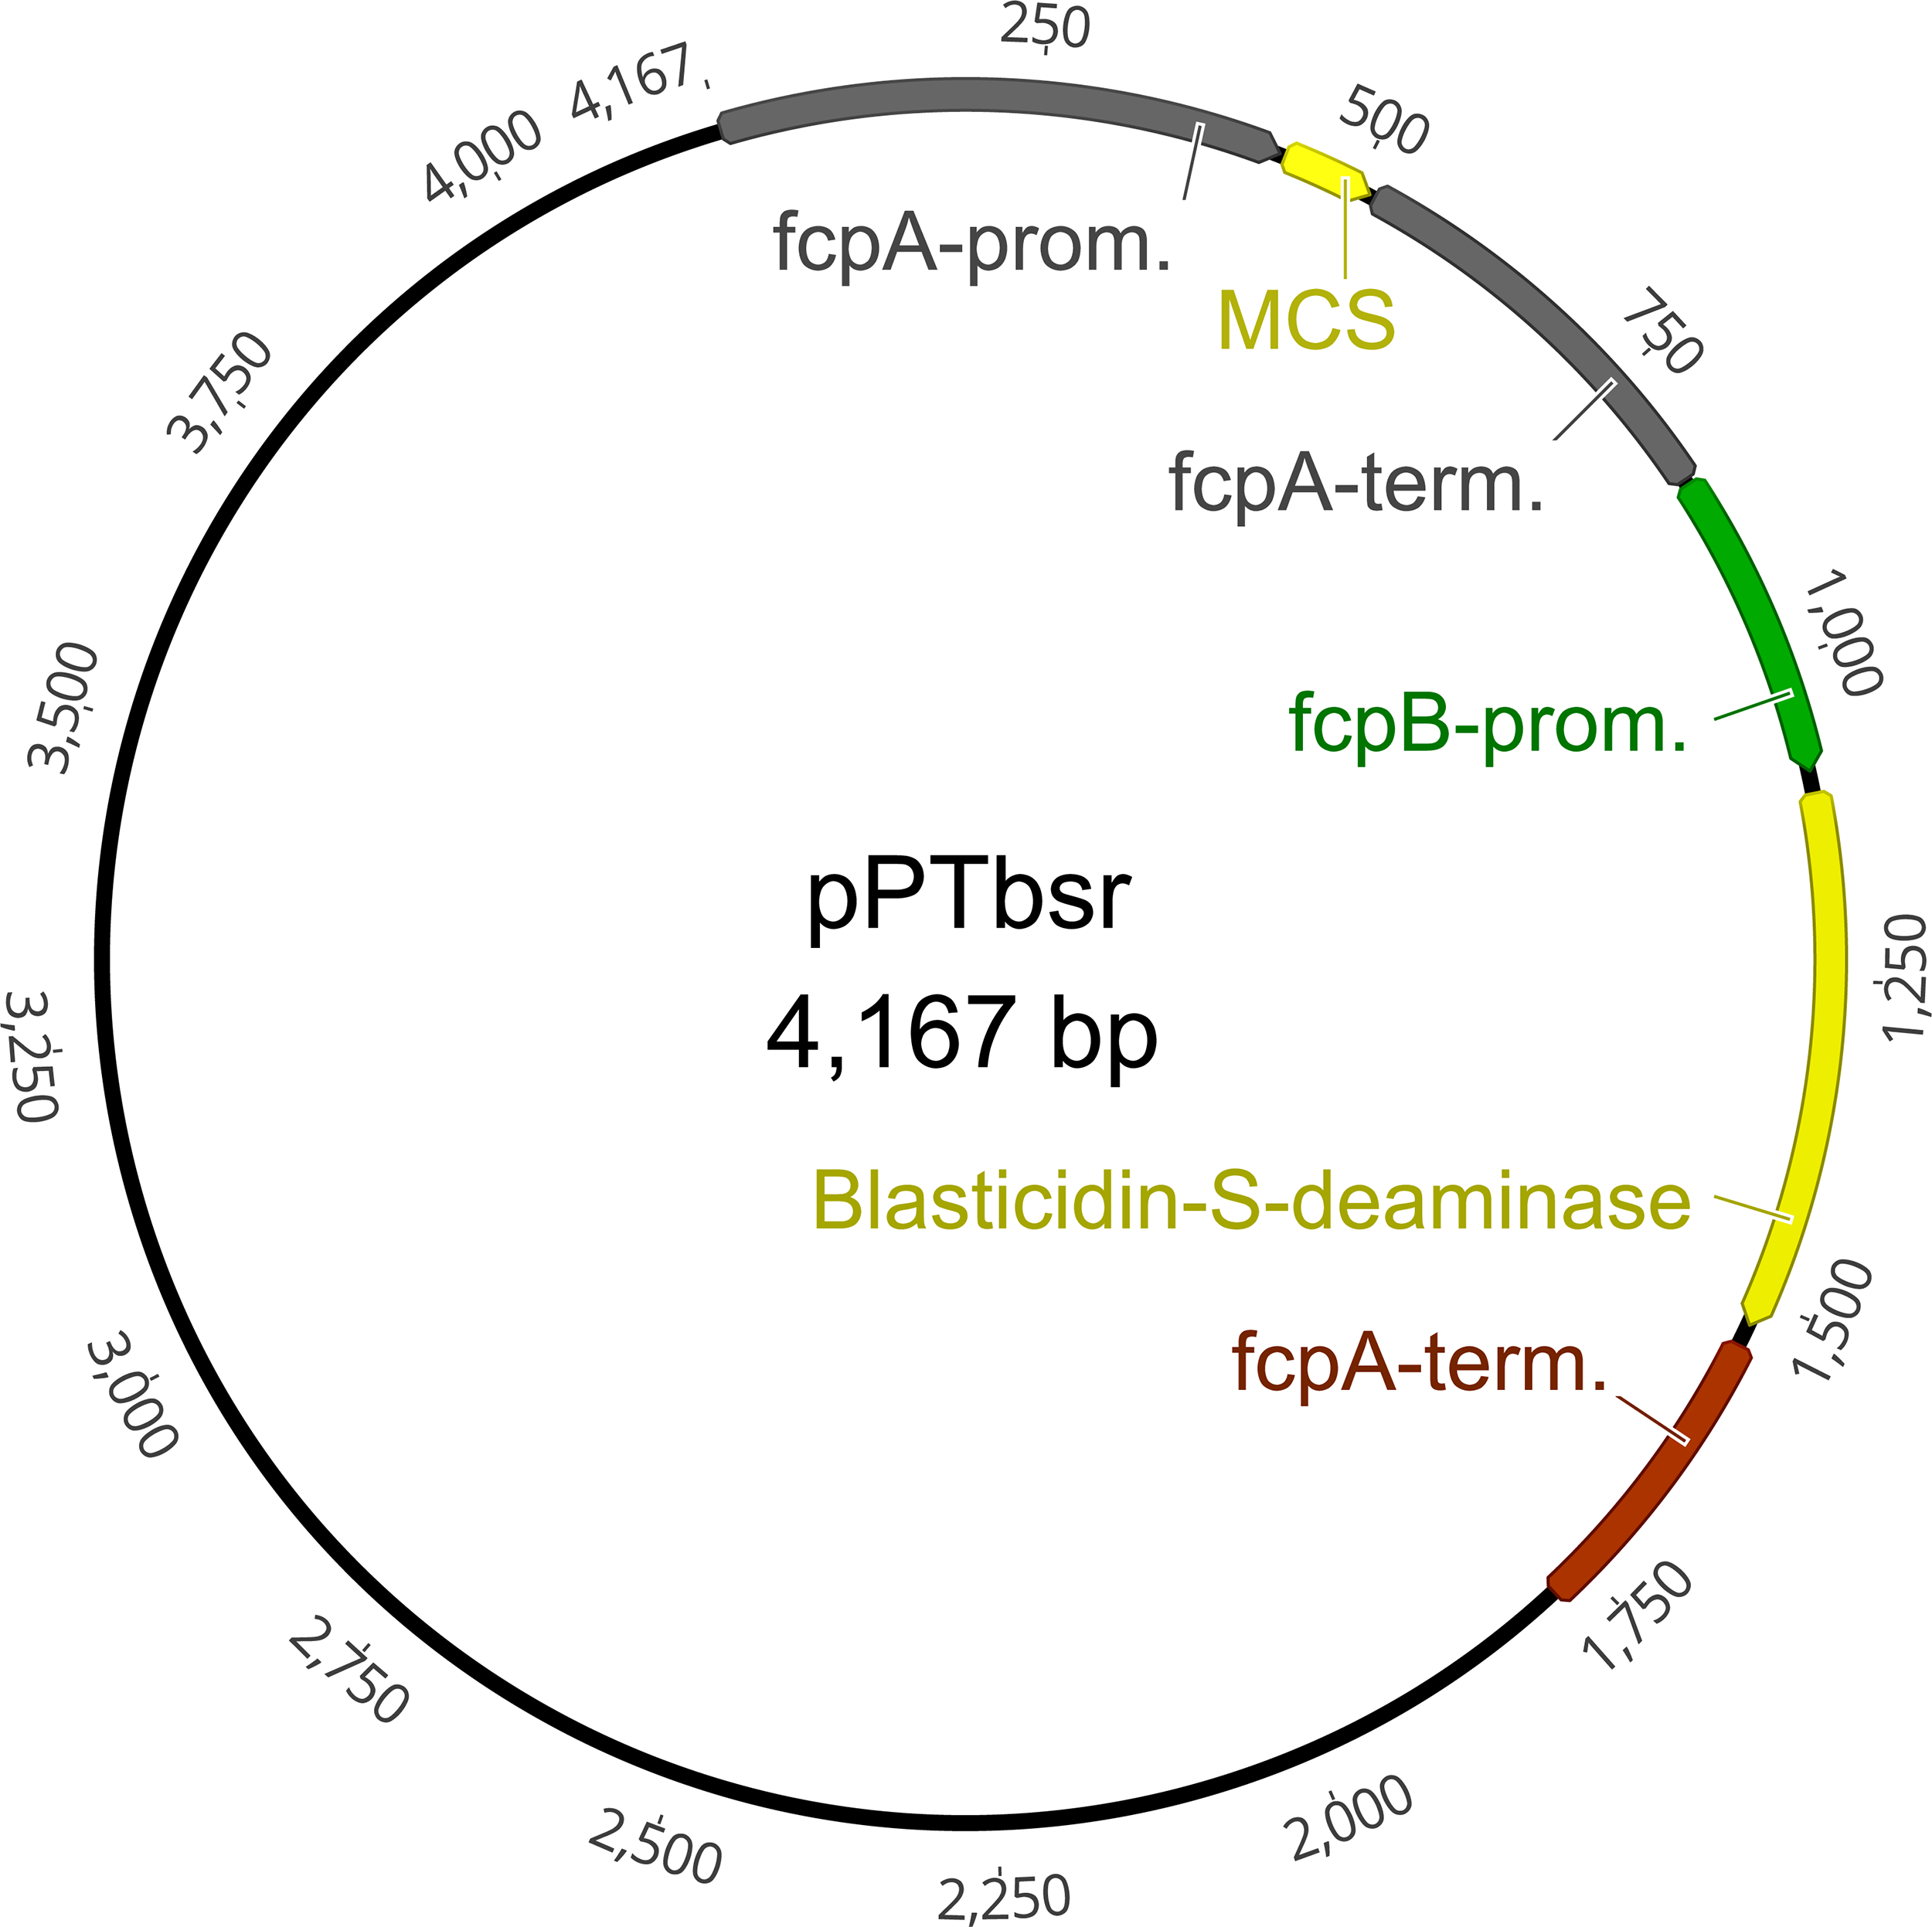 Blasticidin-S deaminase, a new selection marker for genetic